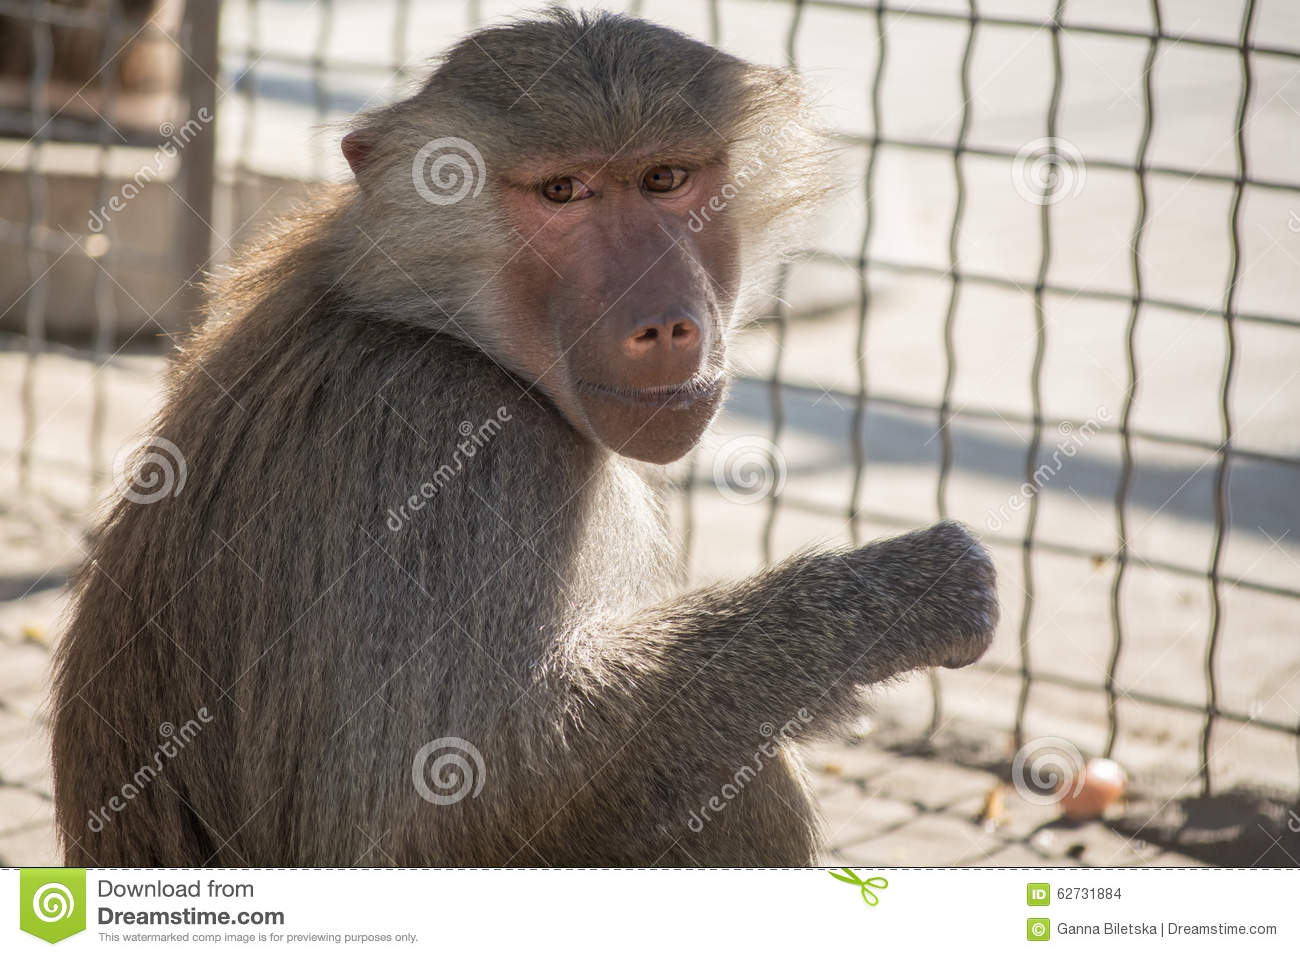 Hamadryad monkey sitting in the zoo cage